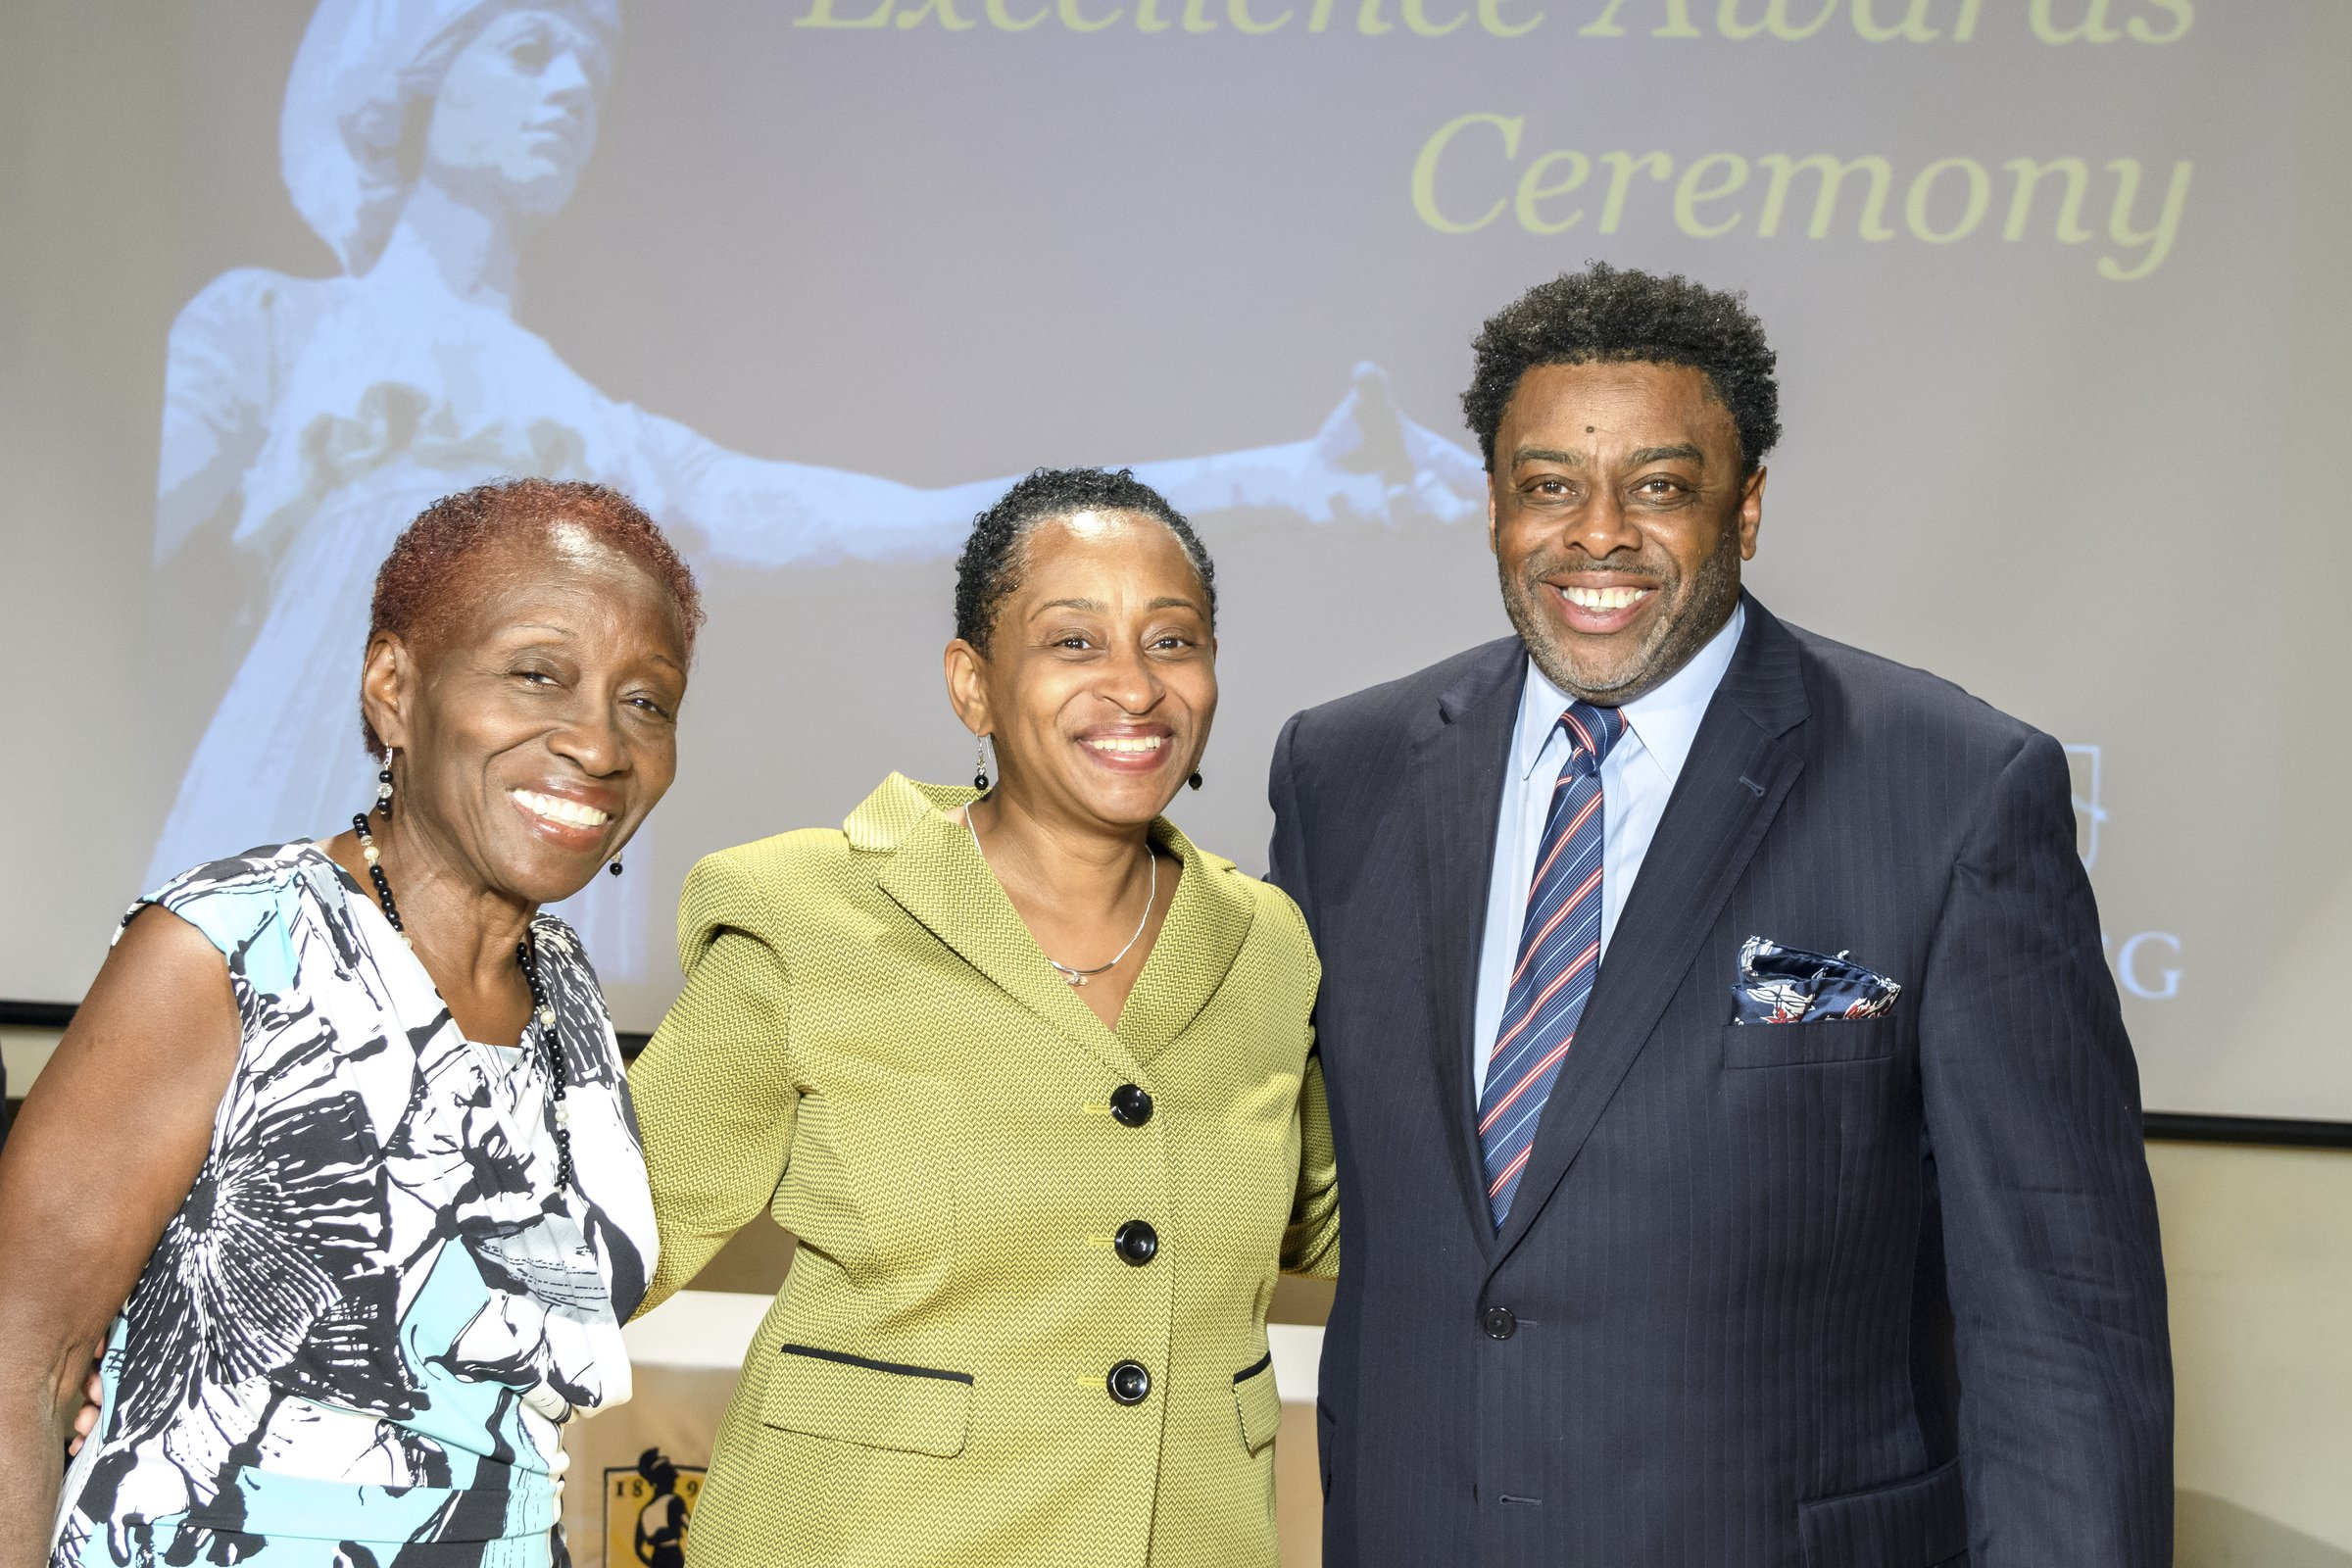 Chancellor Gillliam with two female recipients